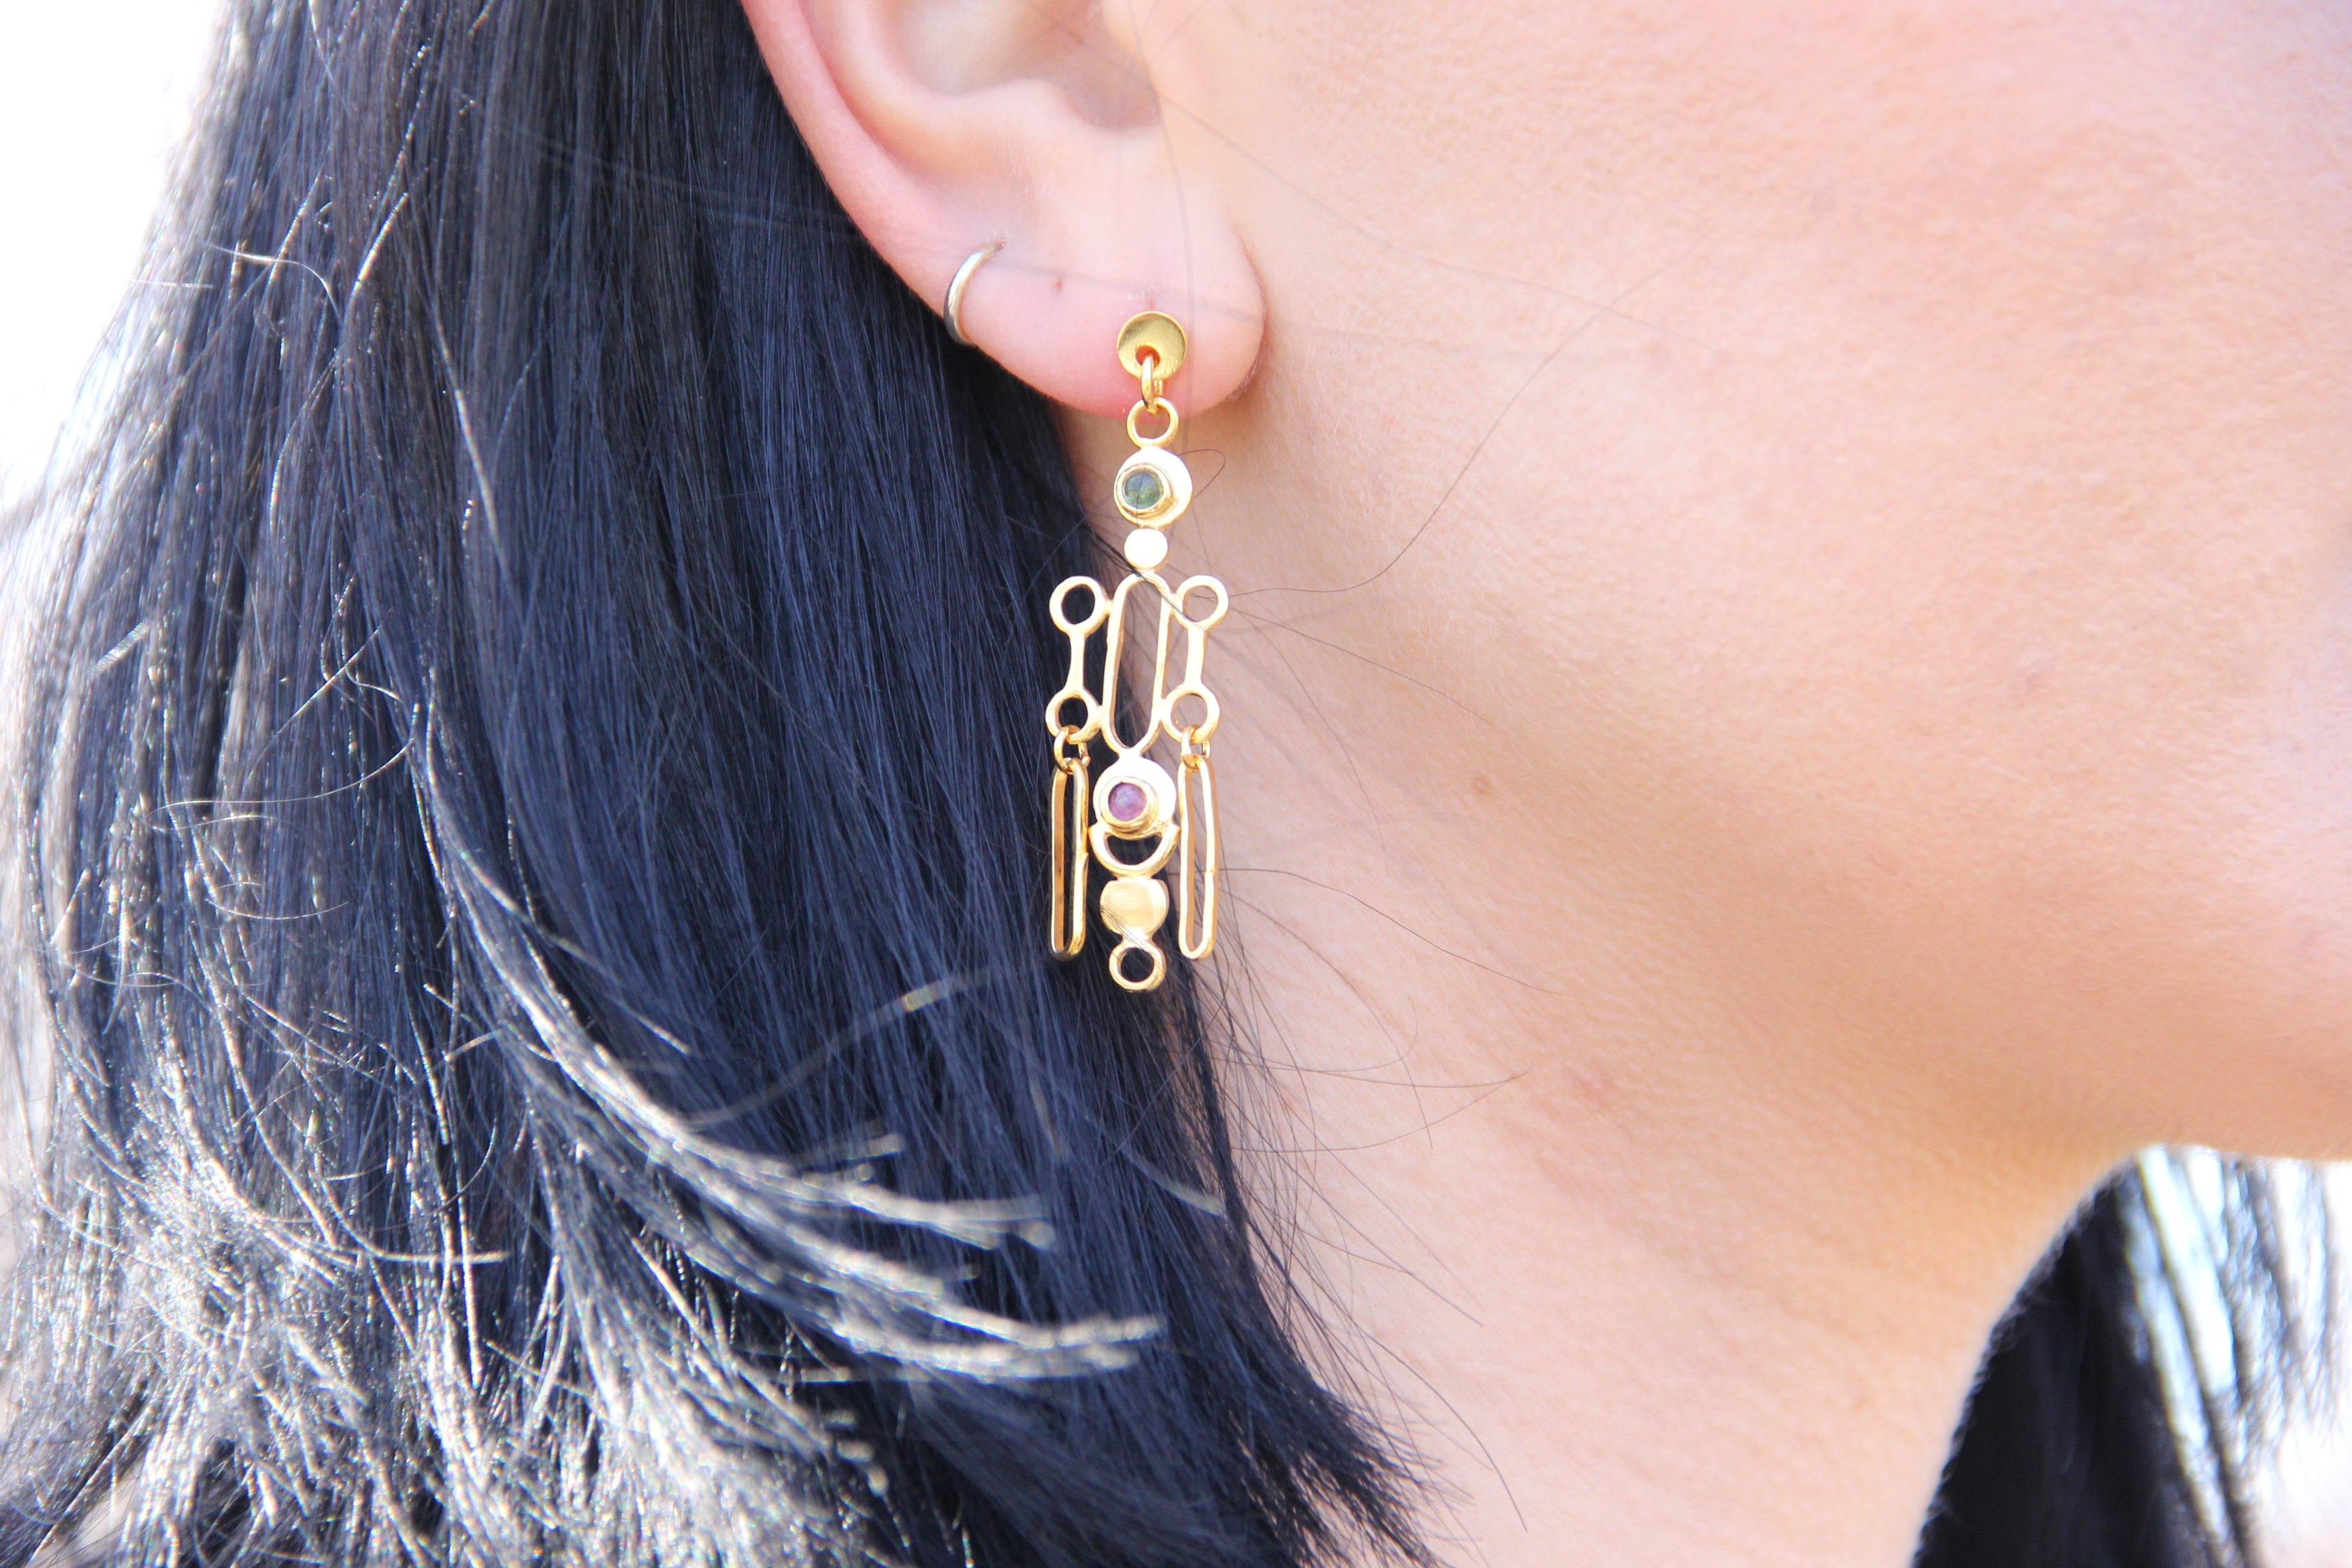 Through the Caledula Earrings